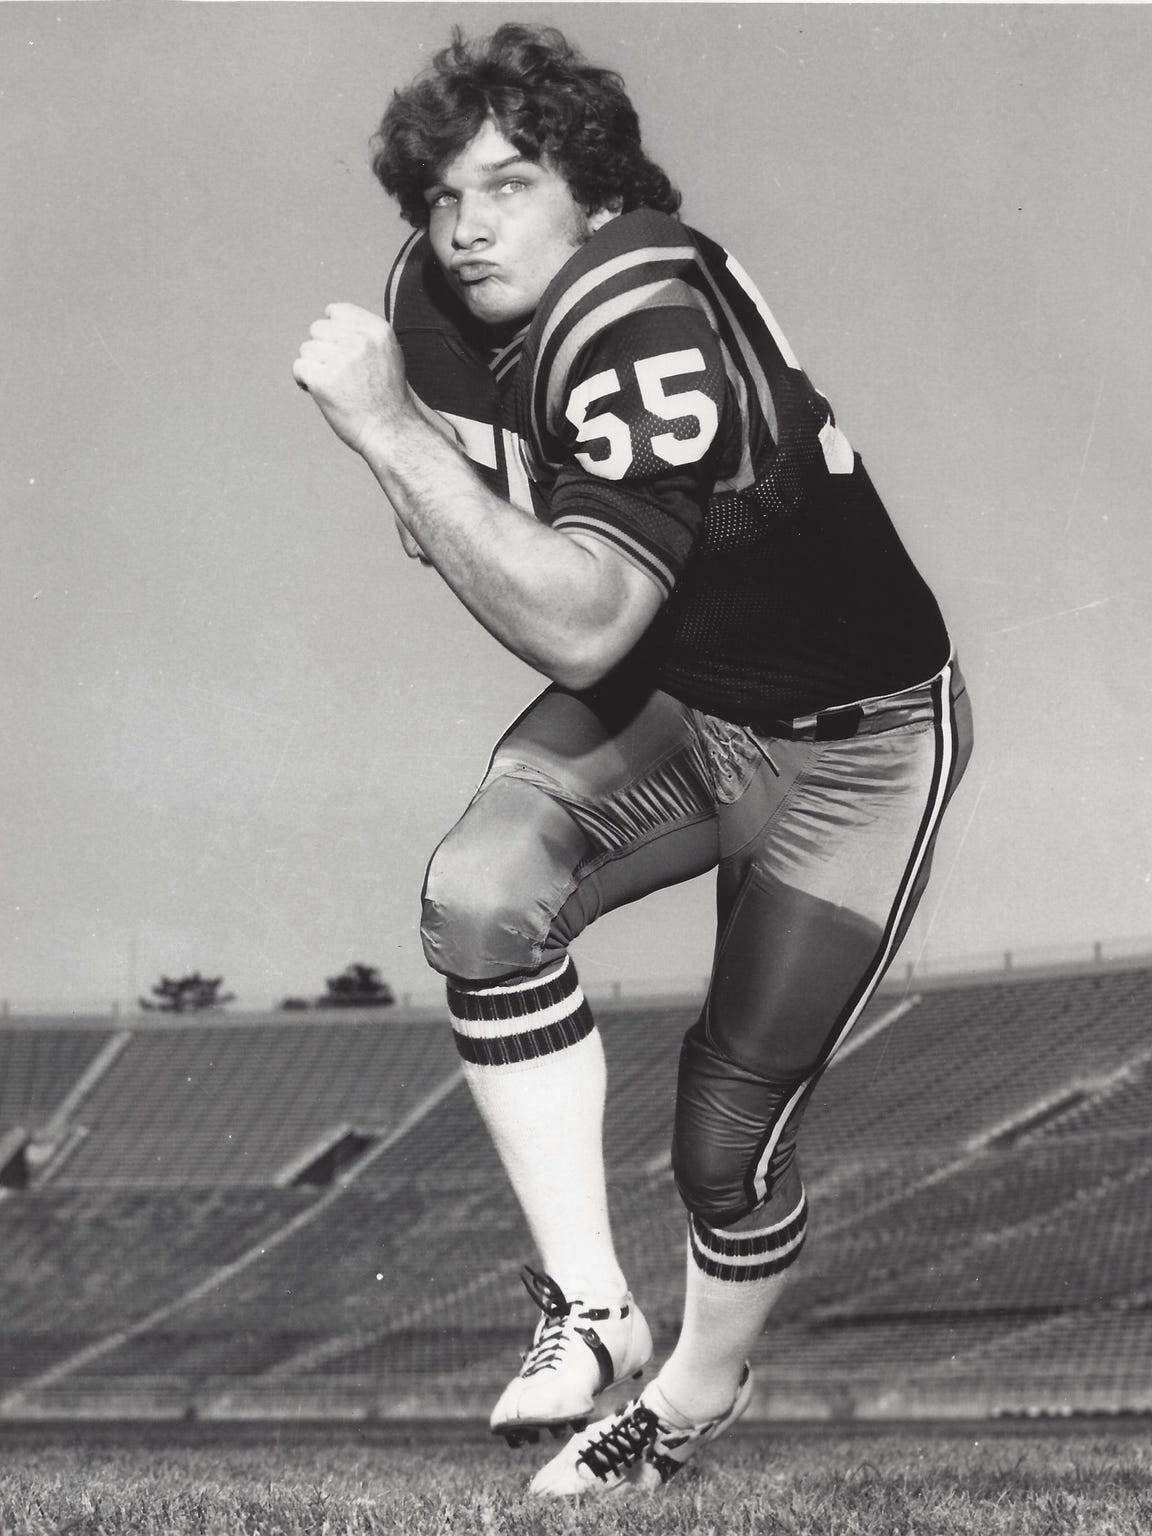 Gregg Bingham went on to a 12-year NFL career with